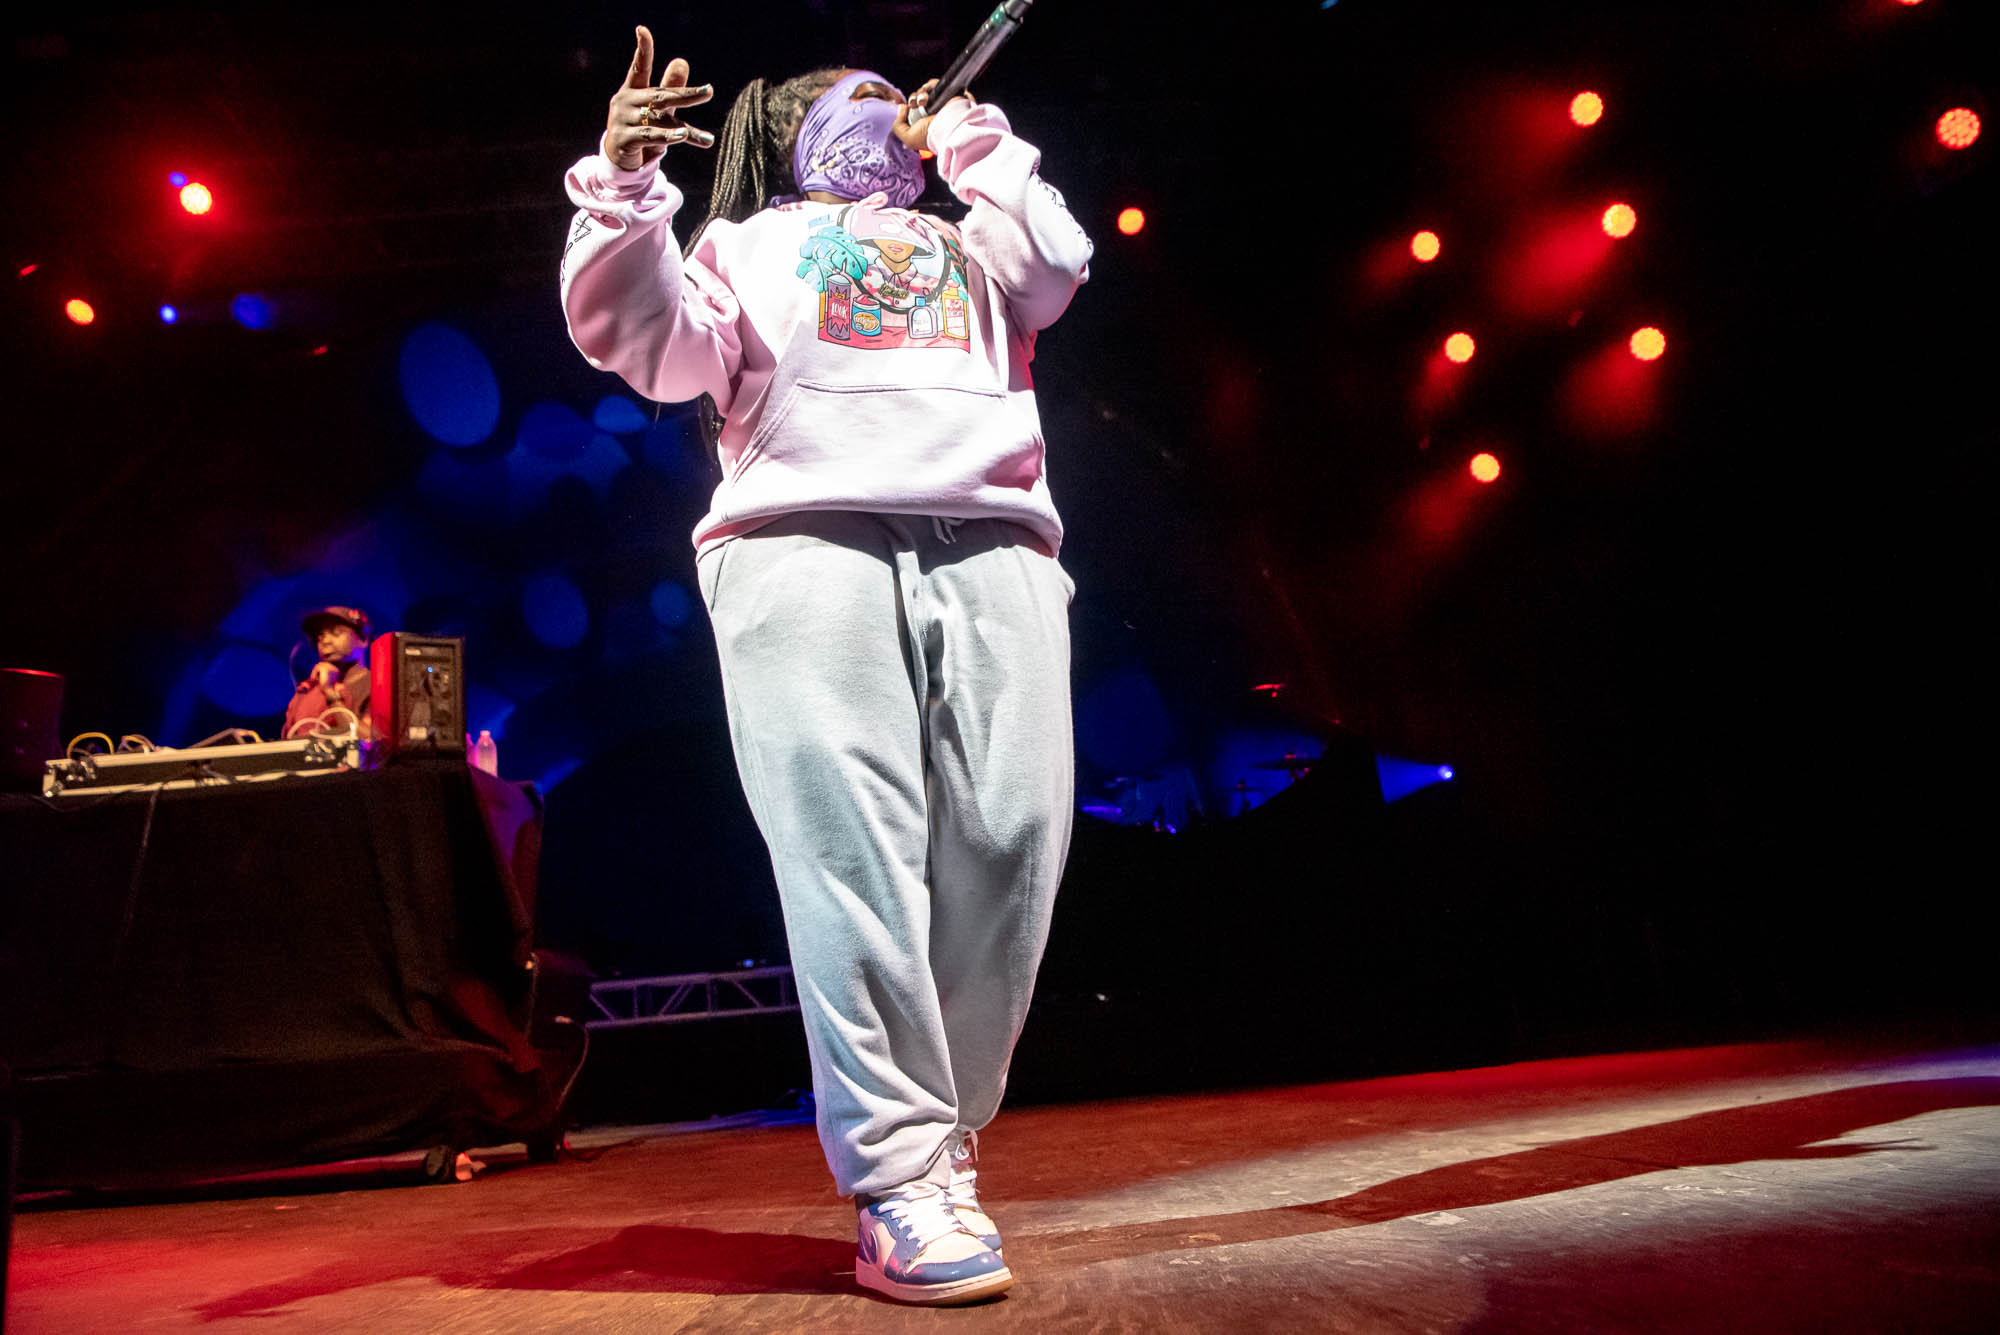 Leikeli47 at BRIC Celebrate Brooklyn! at Prospect Park Bandshell on Friday, July 5, 2019.